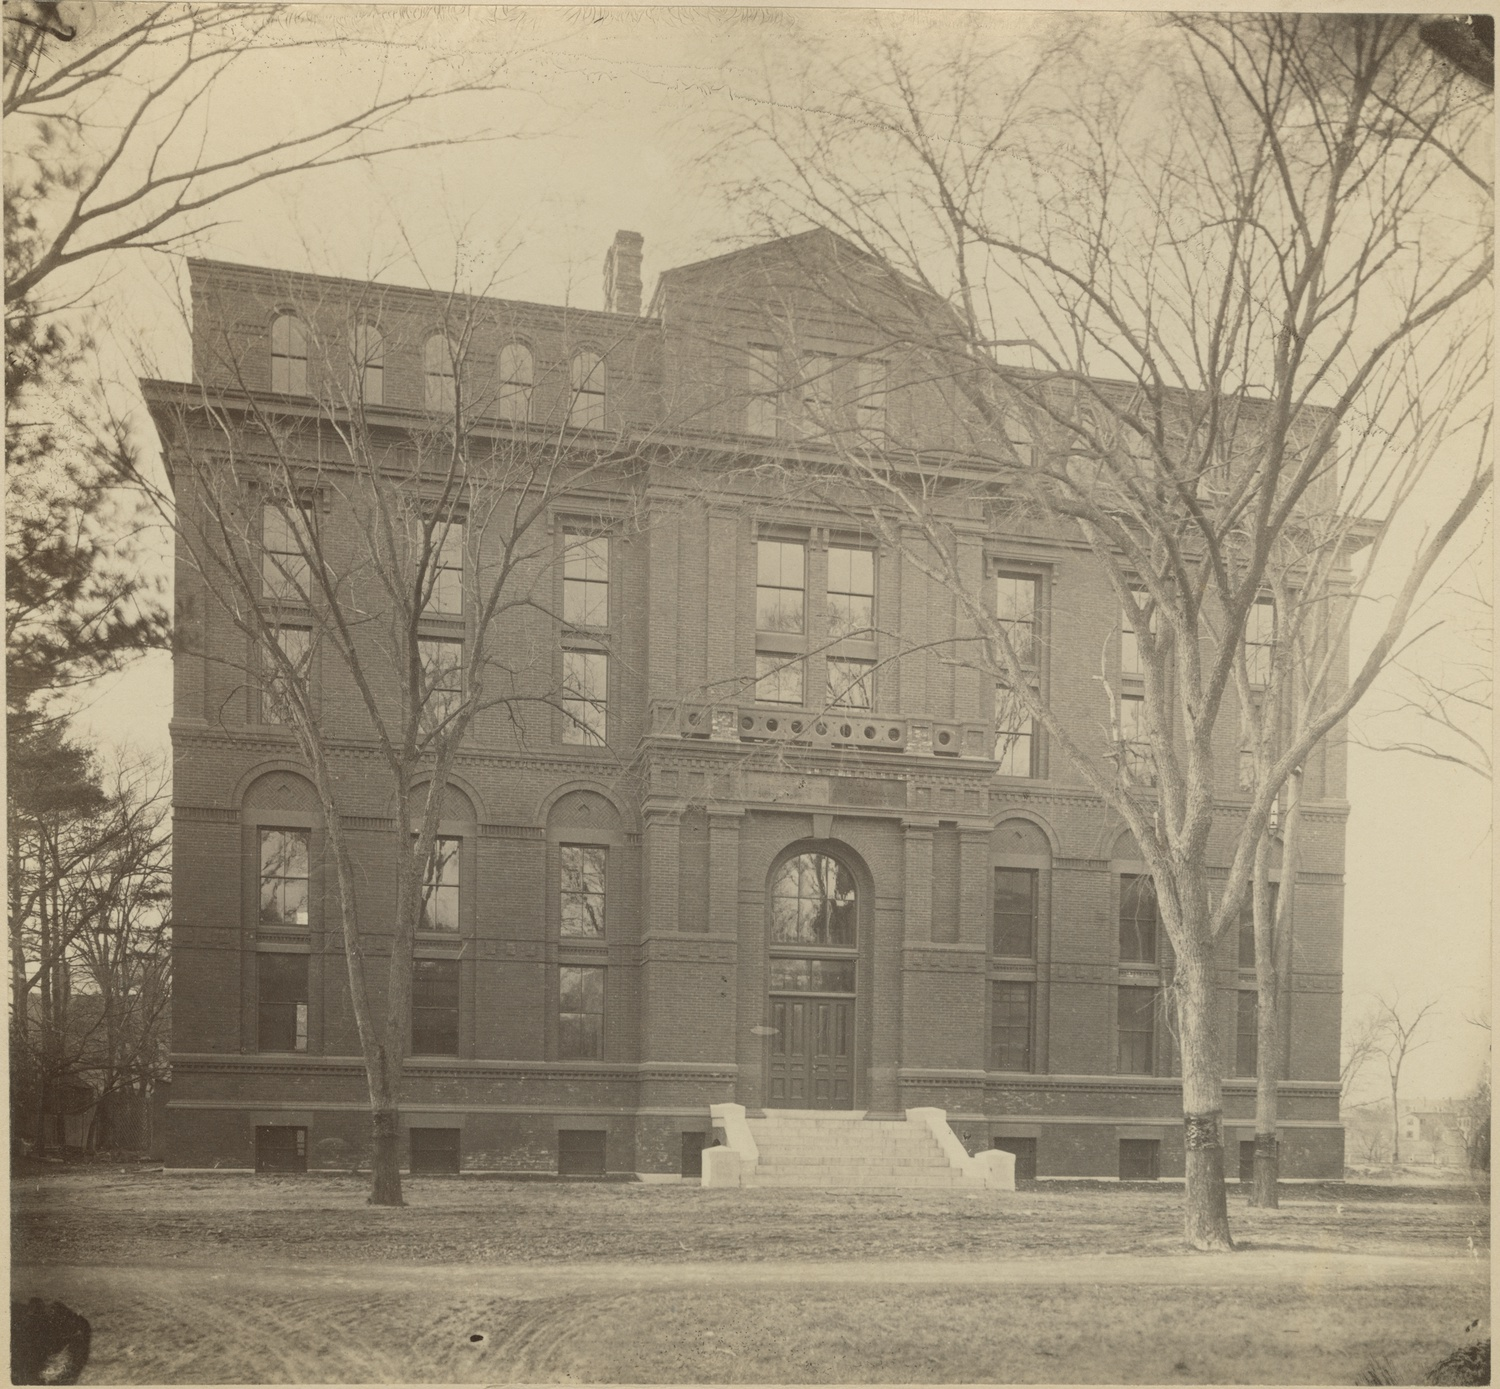 The historic facade of the Peabody museum. © Museum Collection. Courtesy of the Peabody Museum of Archaeology and Ethnology, Harvard University, PM2004.1.326.5